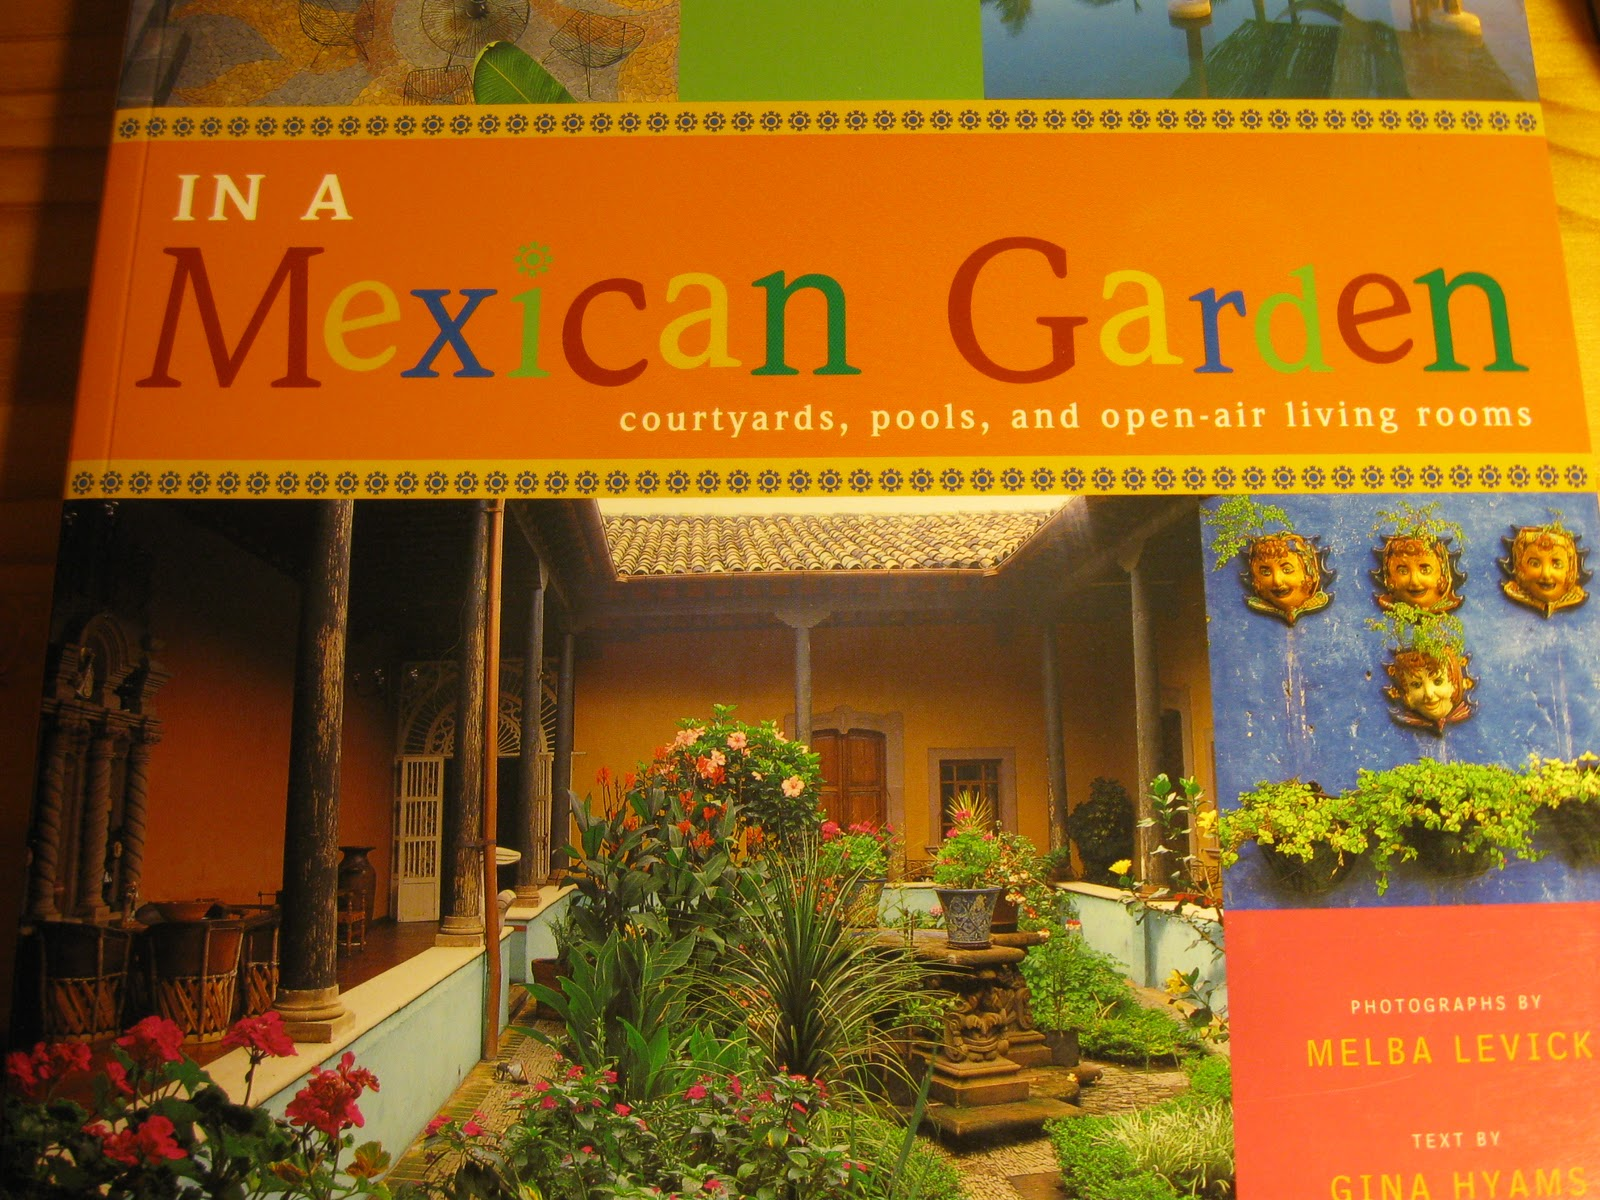 FROM THE BOTANY BOOKSHELF  3 MEXICO STYLE GARDEN BOOKS Tropical Texana